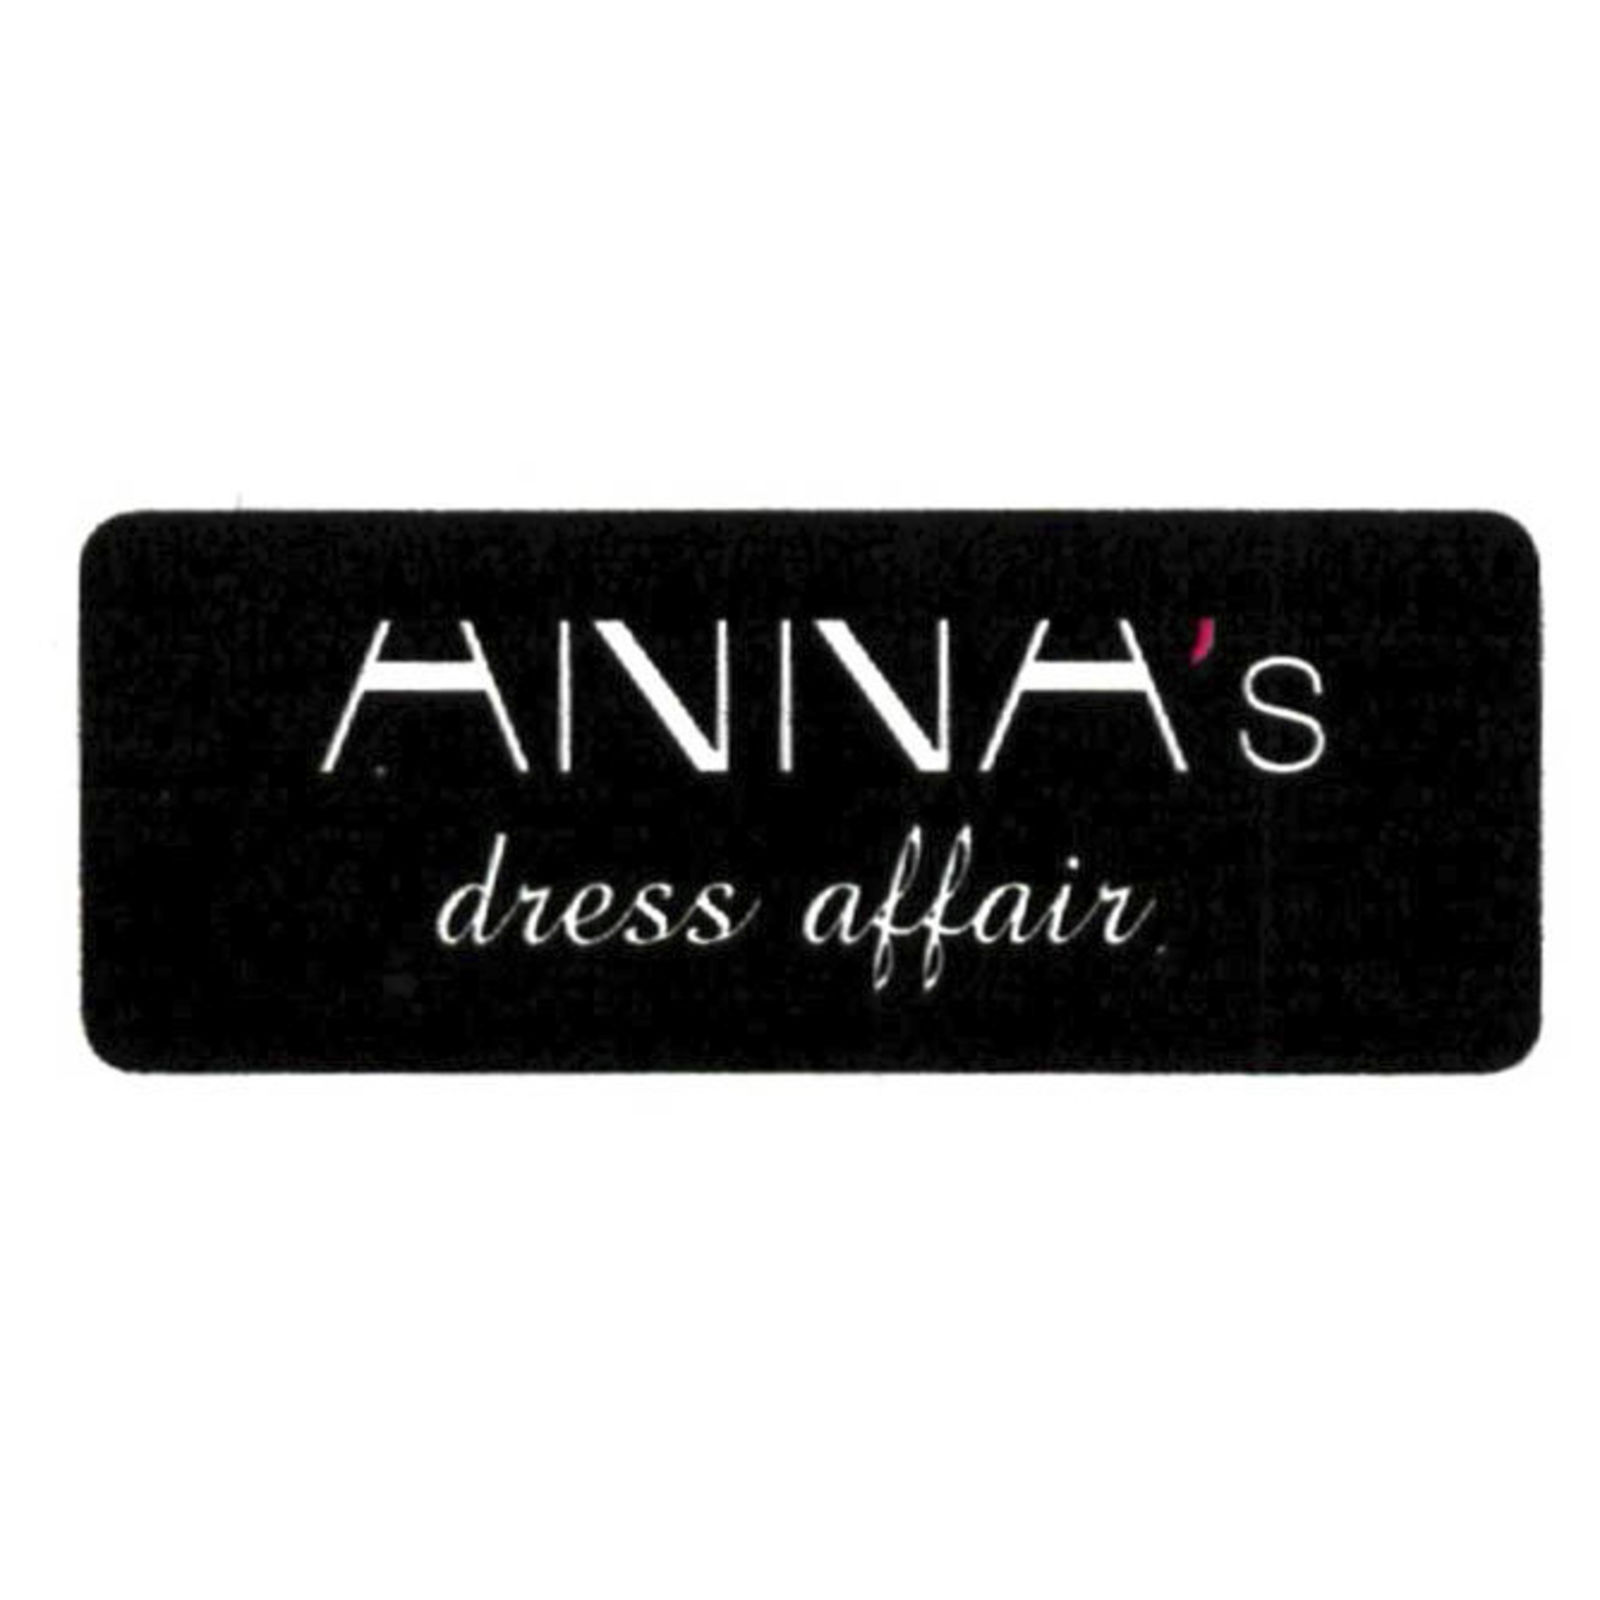 ANNA's dress affair